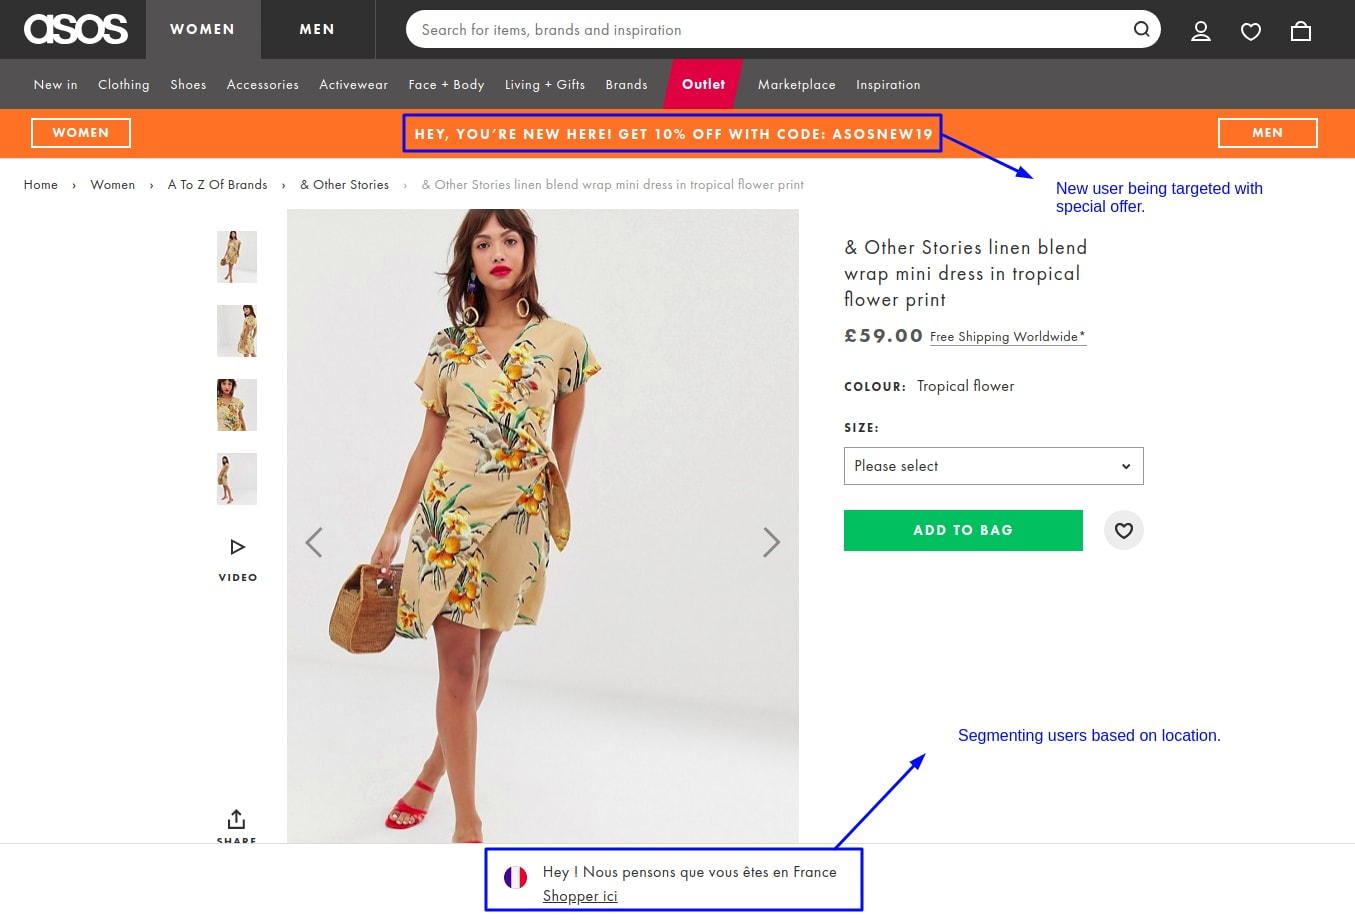 Using geolocation for personalization - ASOS